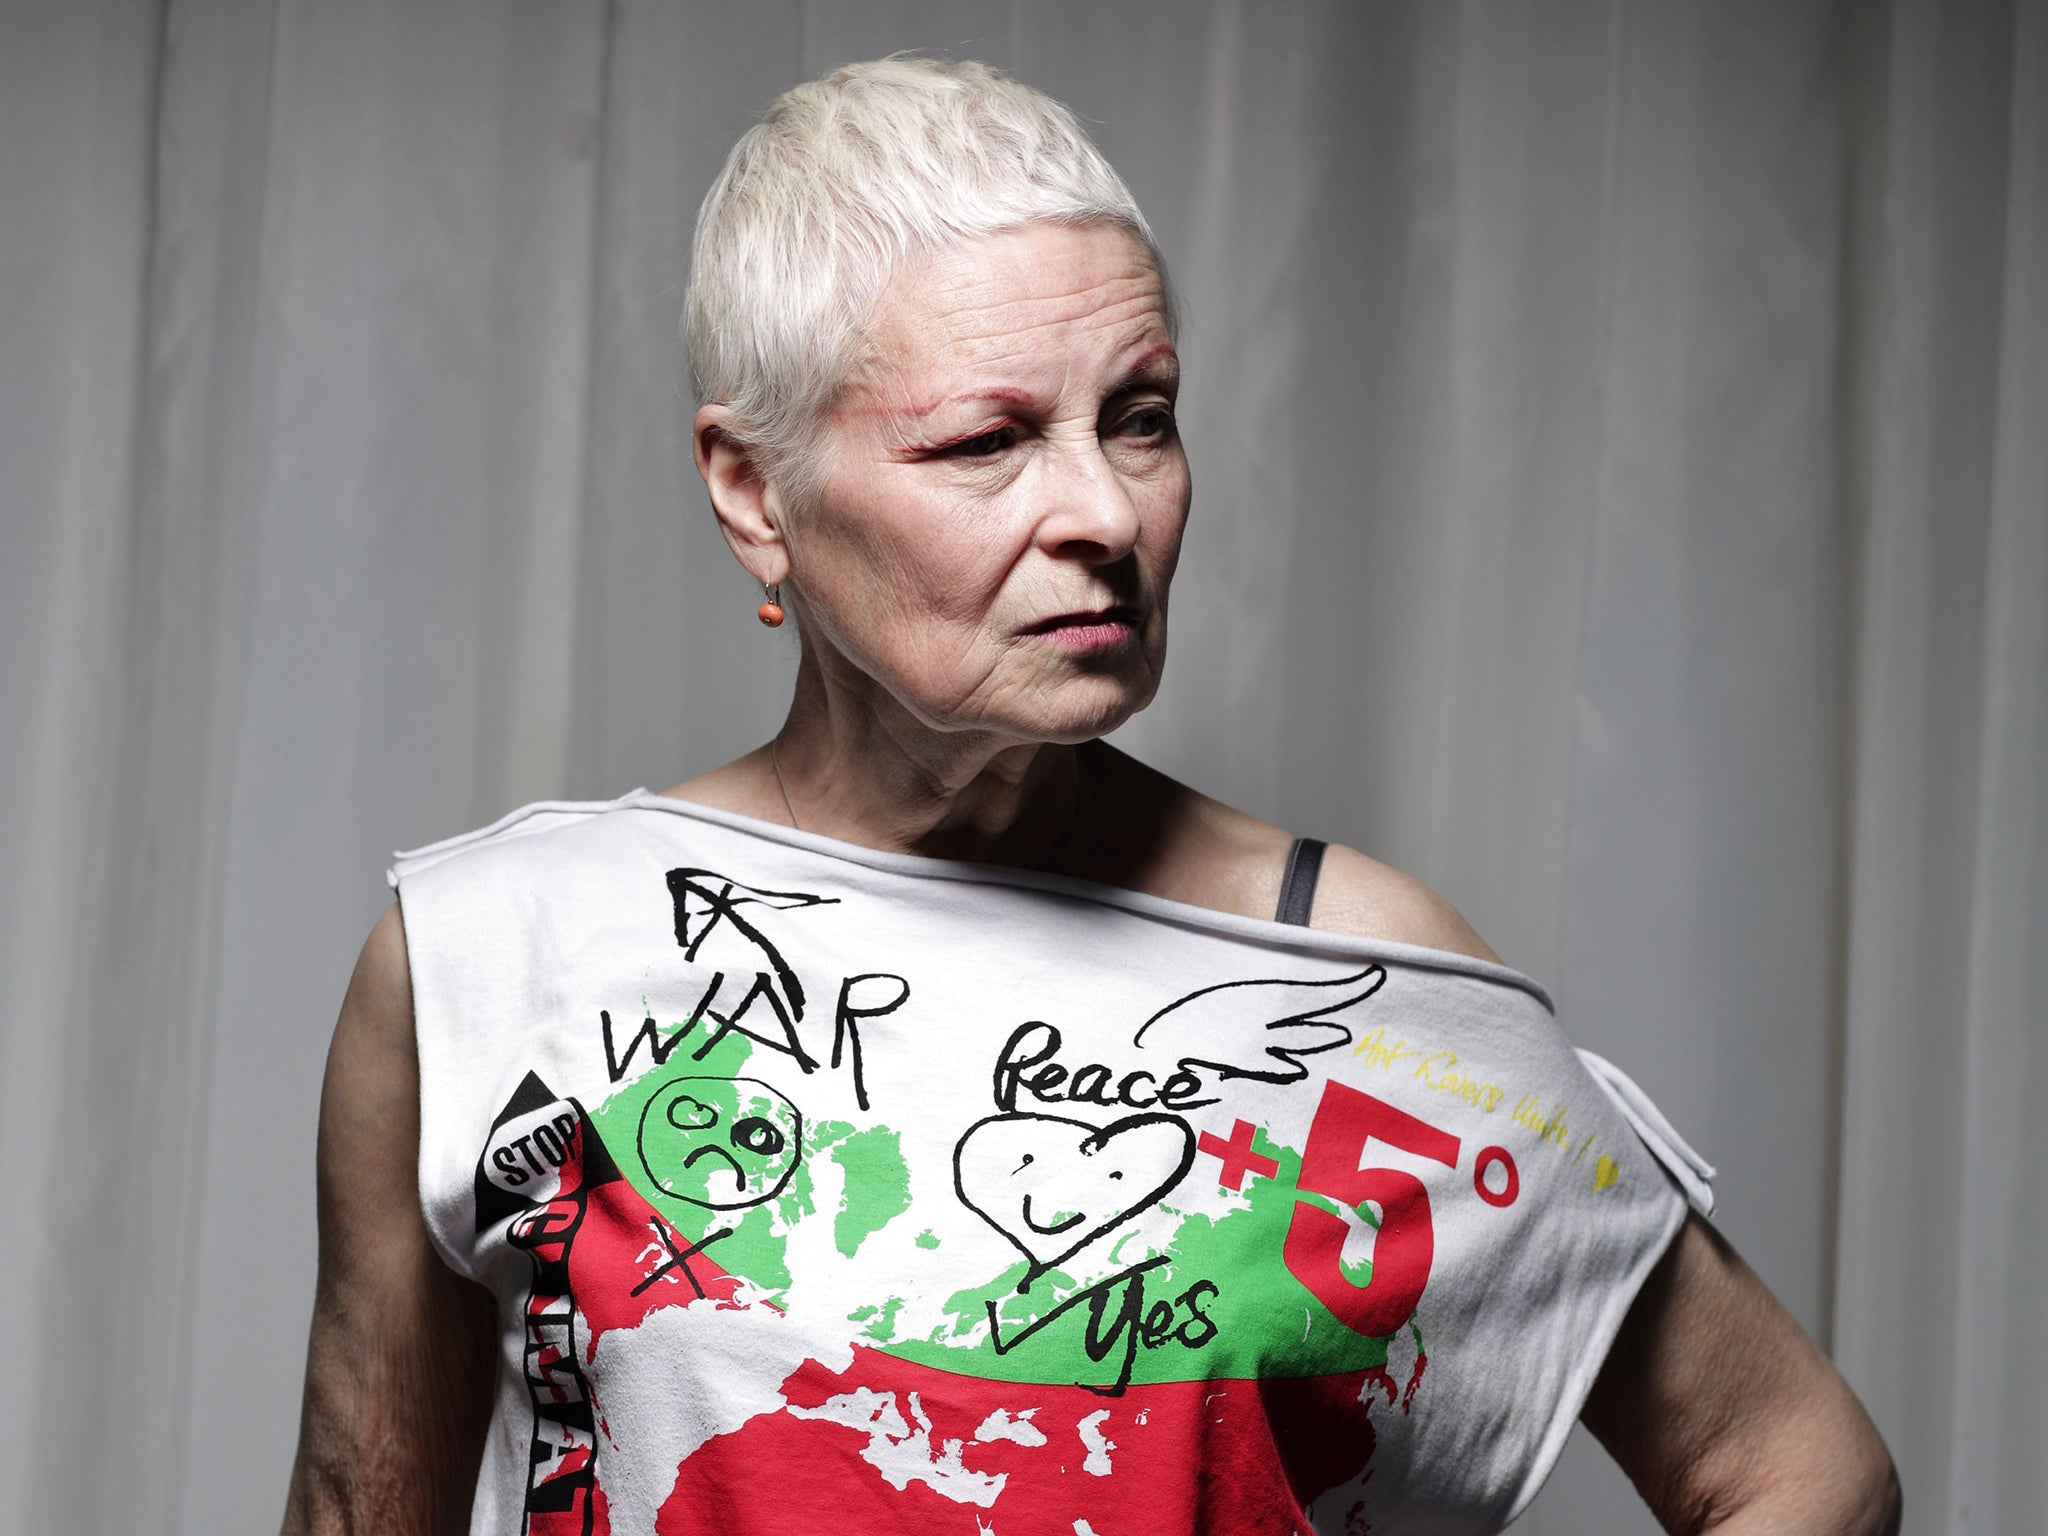 vivienne westwood accused of plagiarism over book on her life news culture the independent. Black Bedroom Furniture Sets. Home Design Ideas